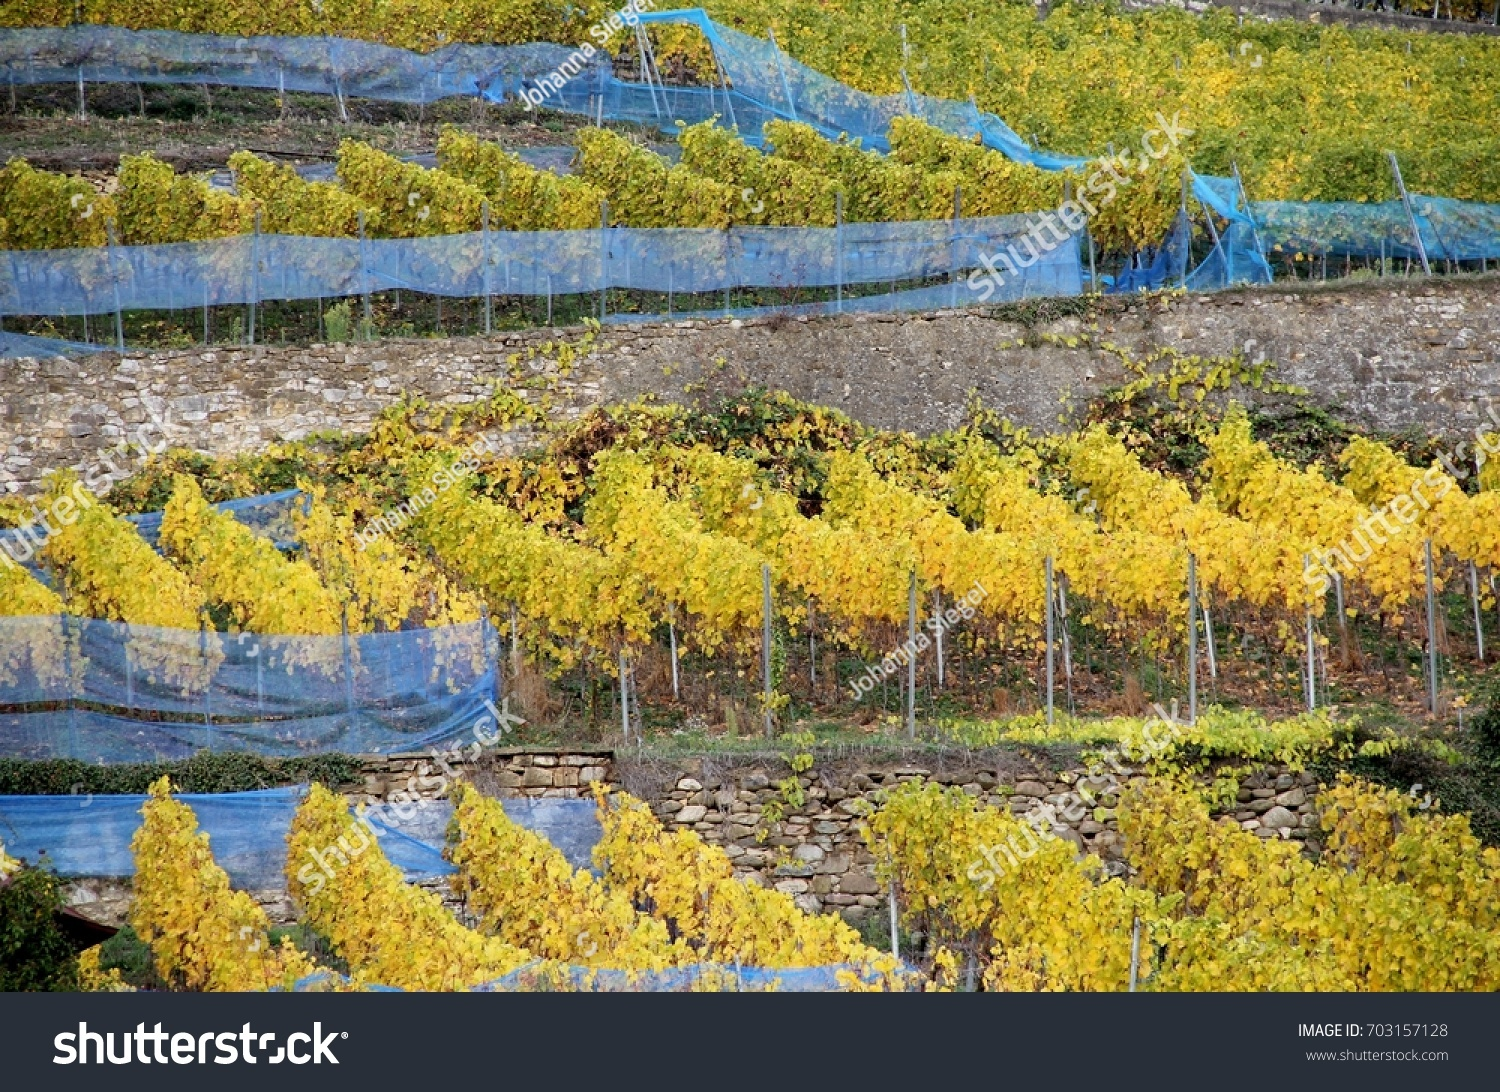 Yellow vineyard with blue safety nets and stone walls in autumn, Germany, November 2016.